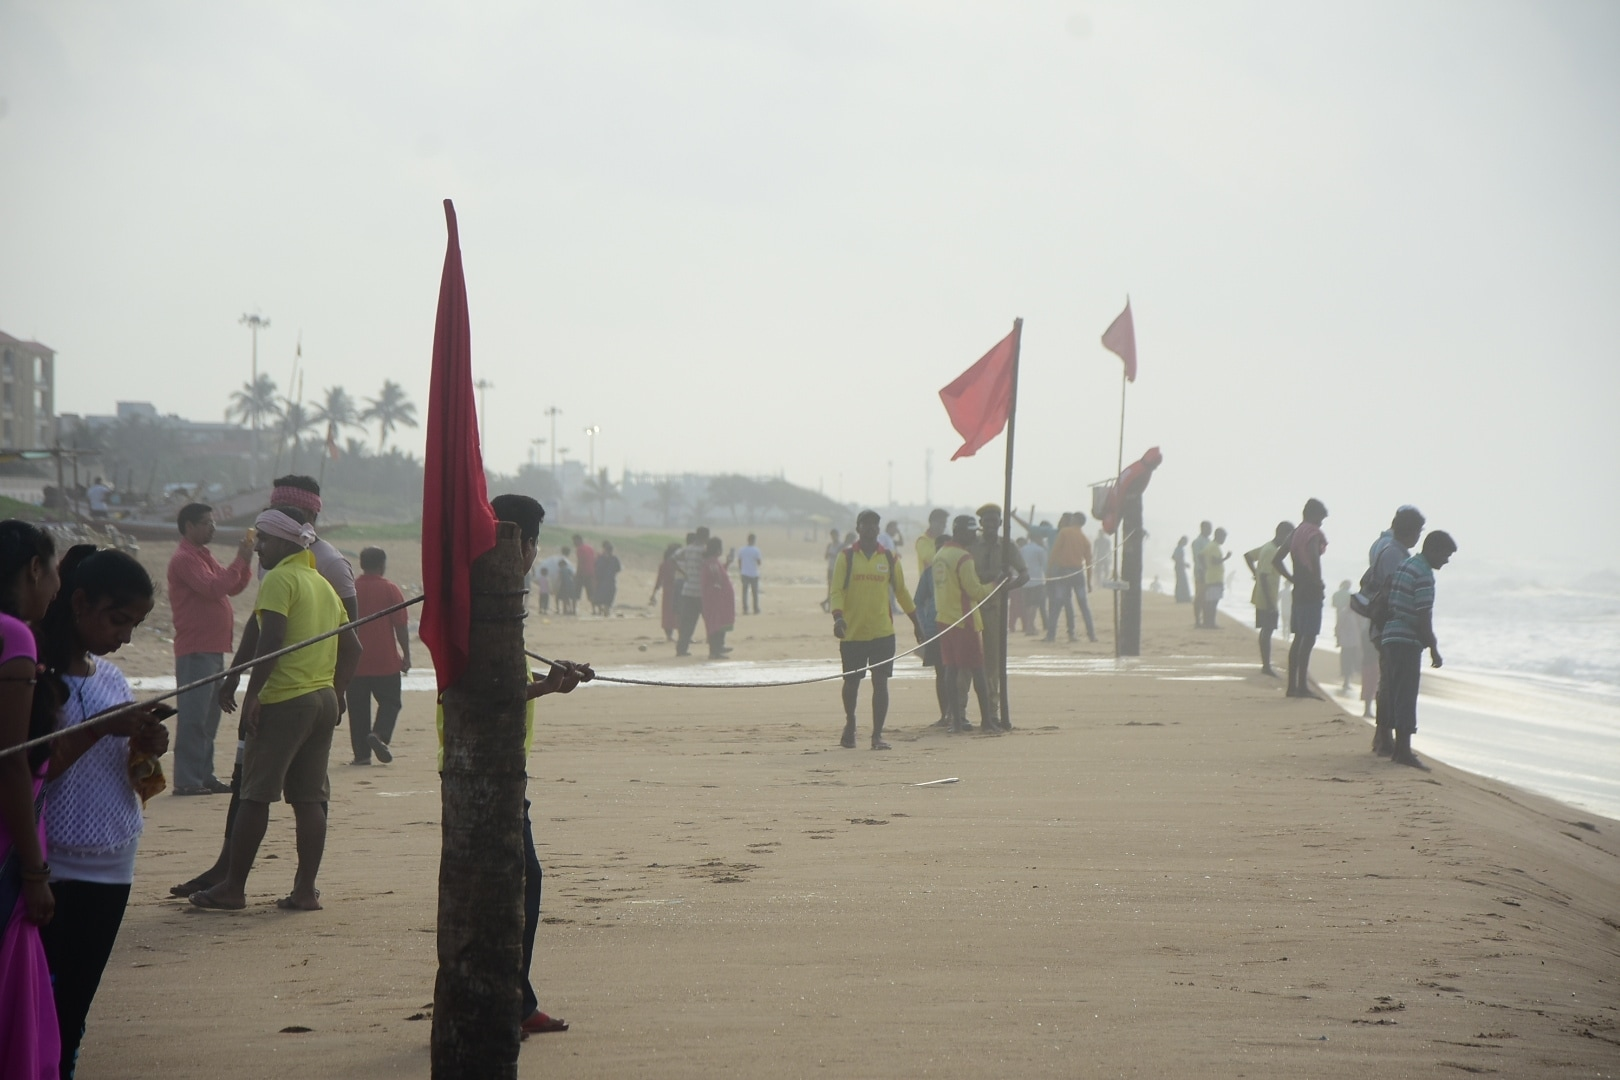 Red flags and ropes are being placed at the banks of the Puri beach as precautionary measures to keep tourists away from the beach in the wake of severe cyclonic storm 'Fani' in Odisha's Puri on May 2, 2019. (Photo: IANS)